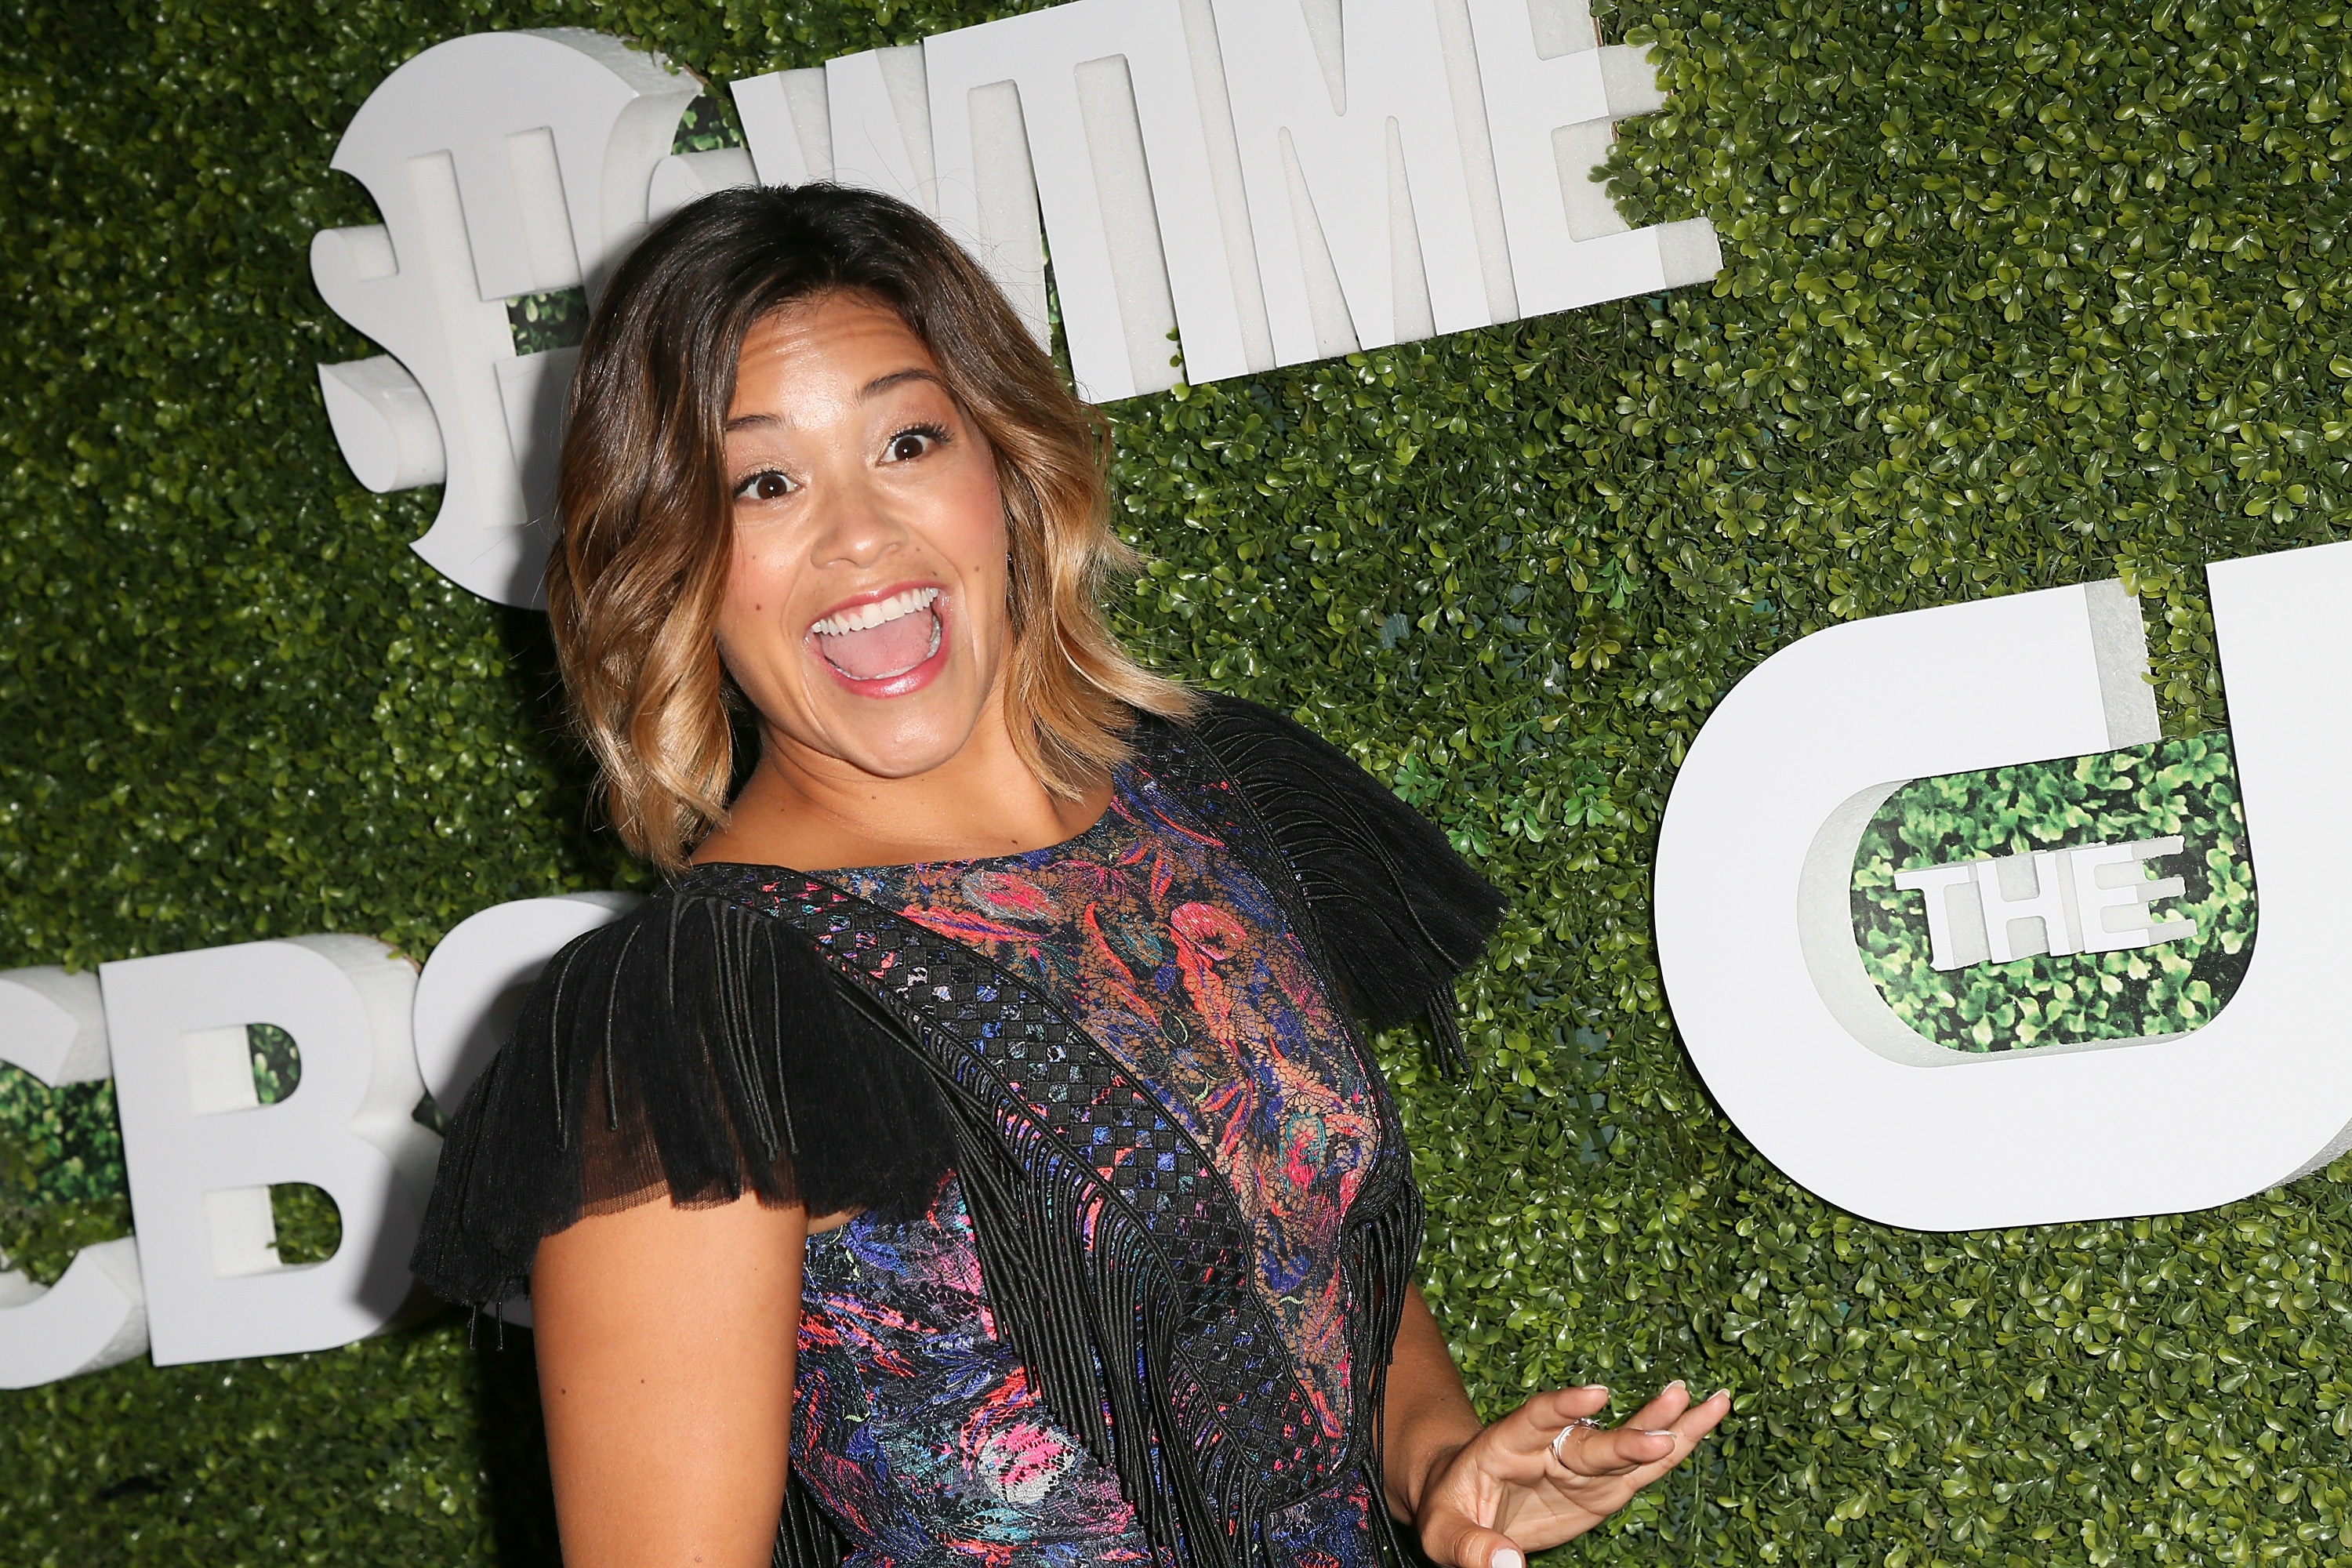 Gina Rodriguez DGAF what people think about her half-shaved head and we couldn't agree more